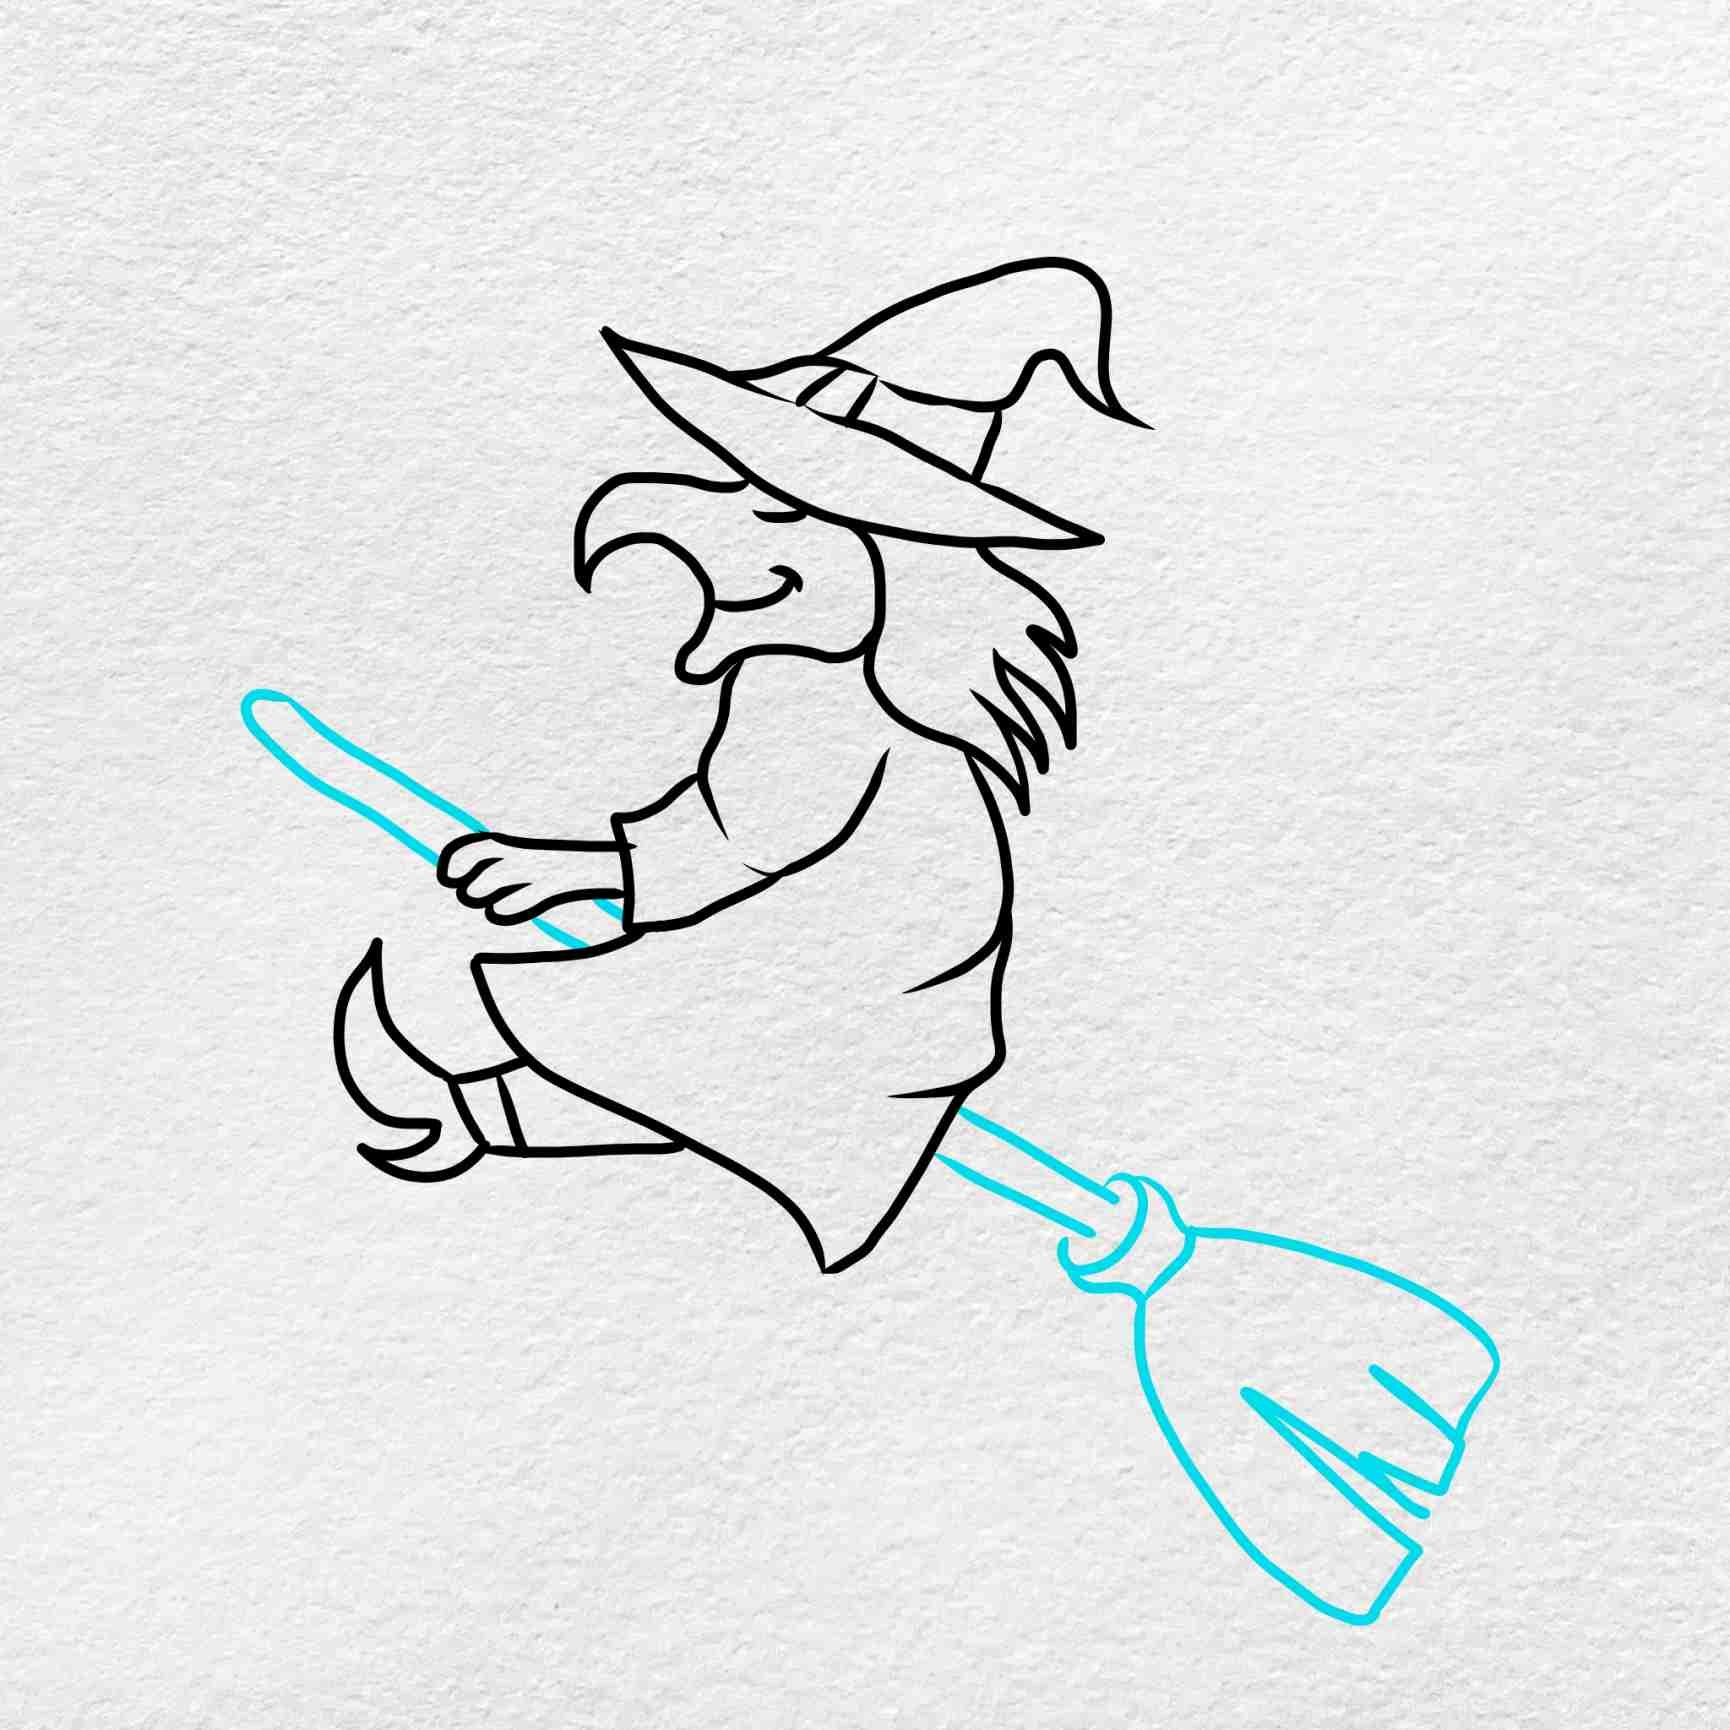 Easy Witch Drawing: Step 5